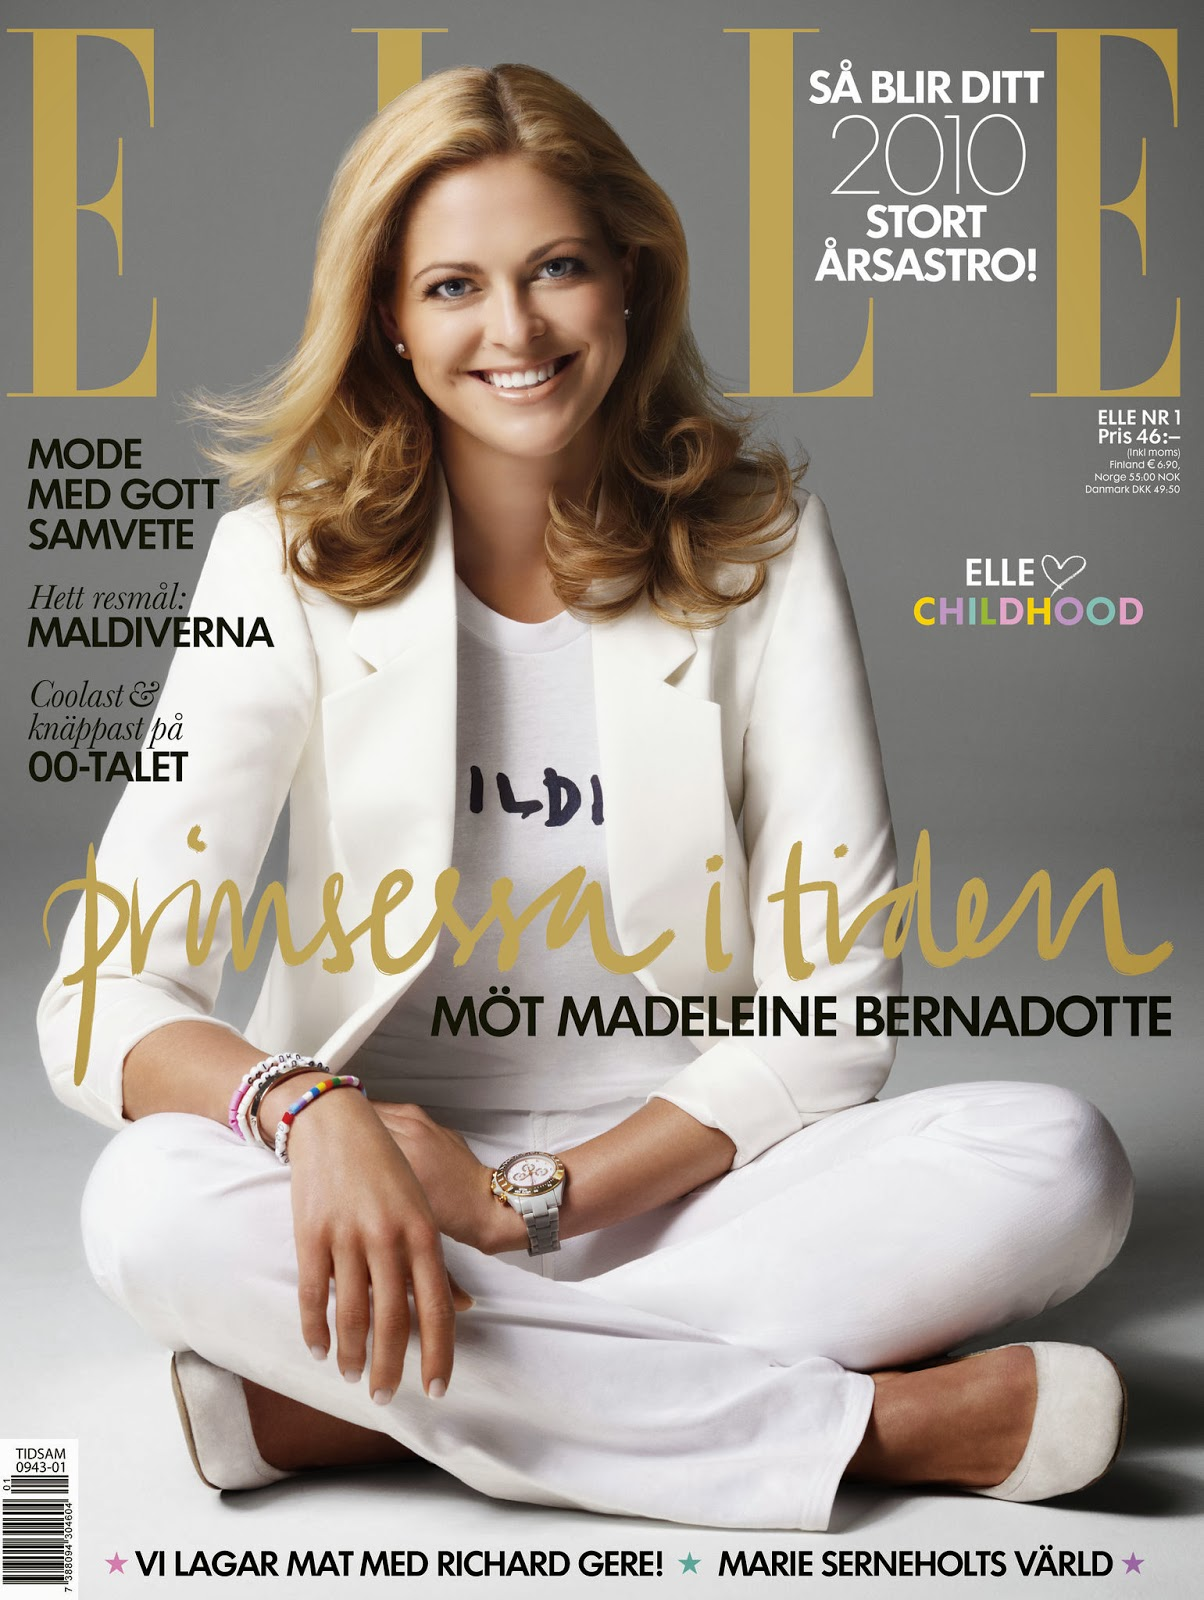 The Royal Source: Princess Madeleine on old magazine covers